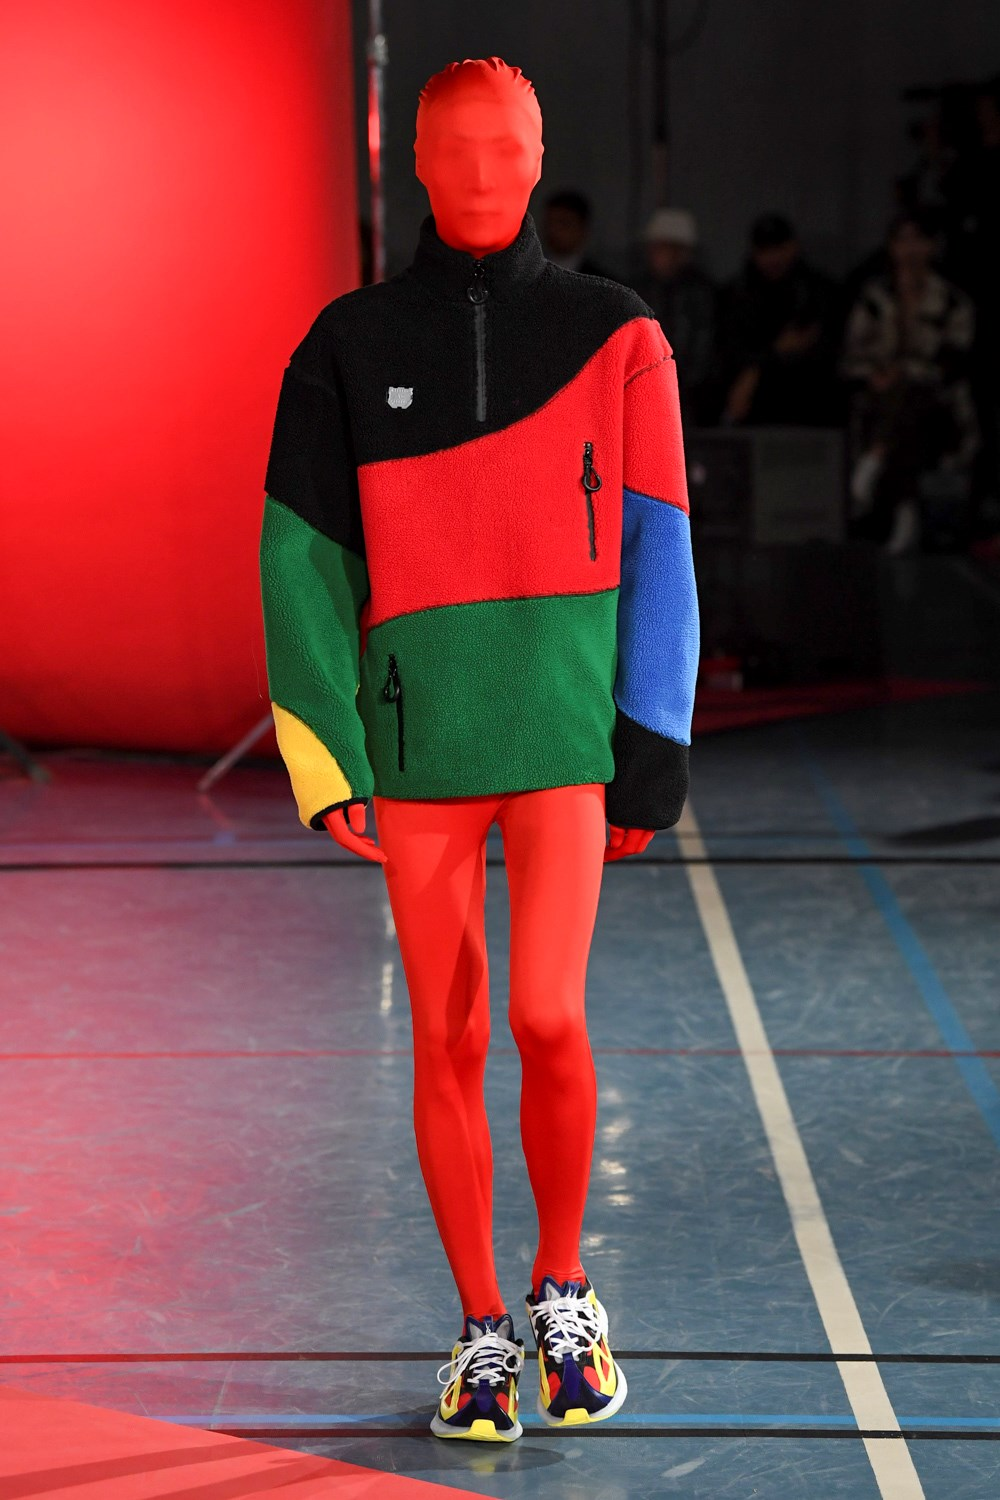 Angus Chiang - Automne-Hiver 2020-2021 - Paris Fashion Week